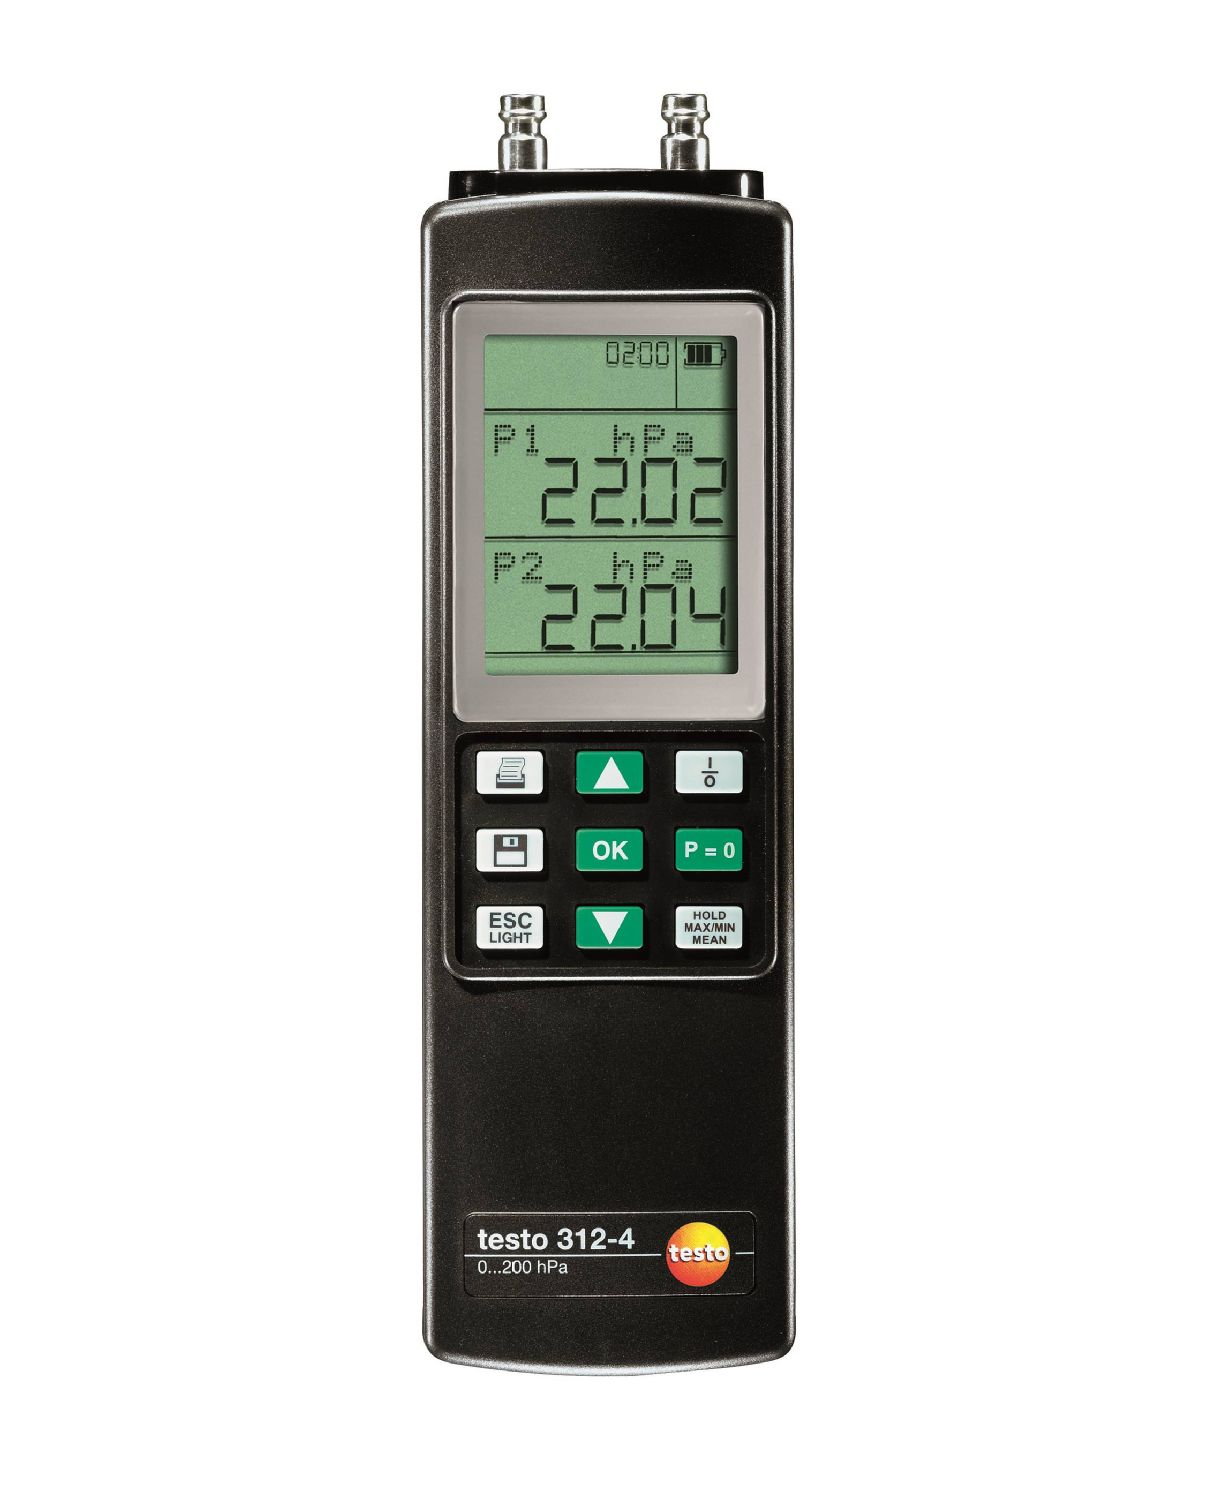 testo 312-4